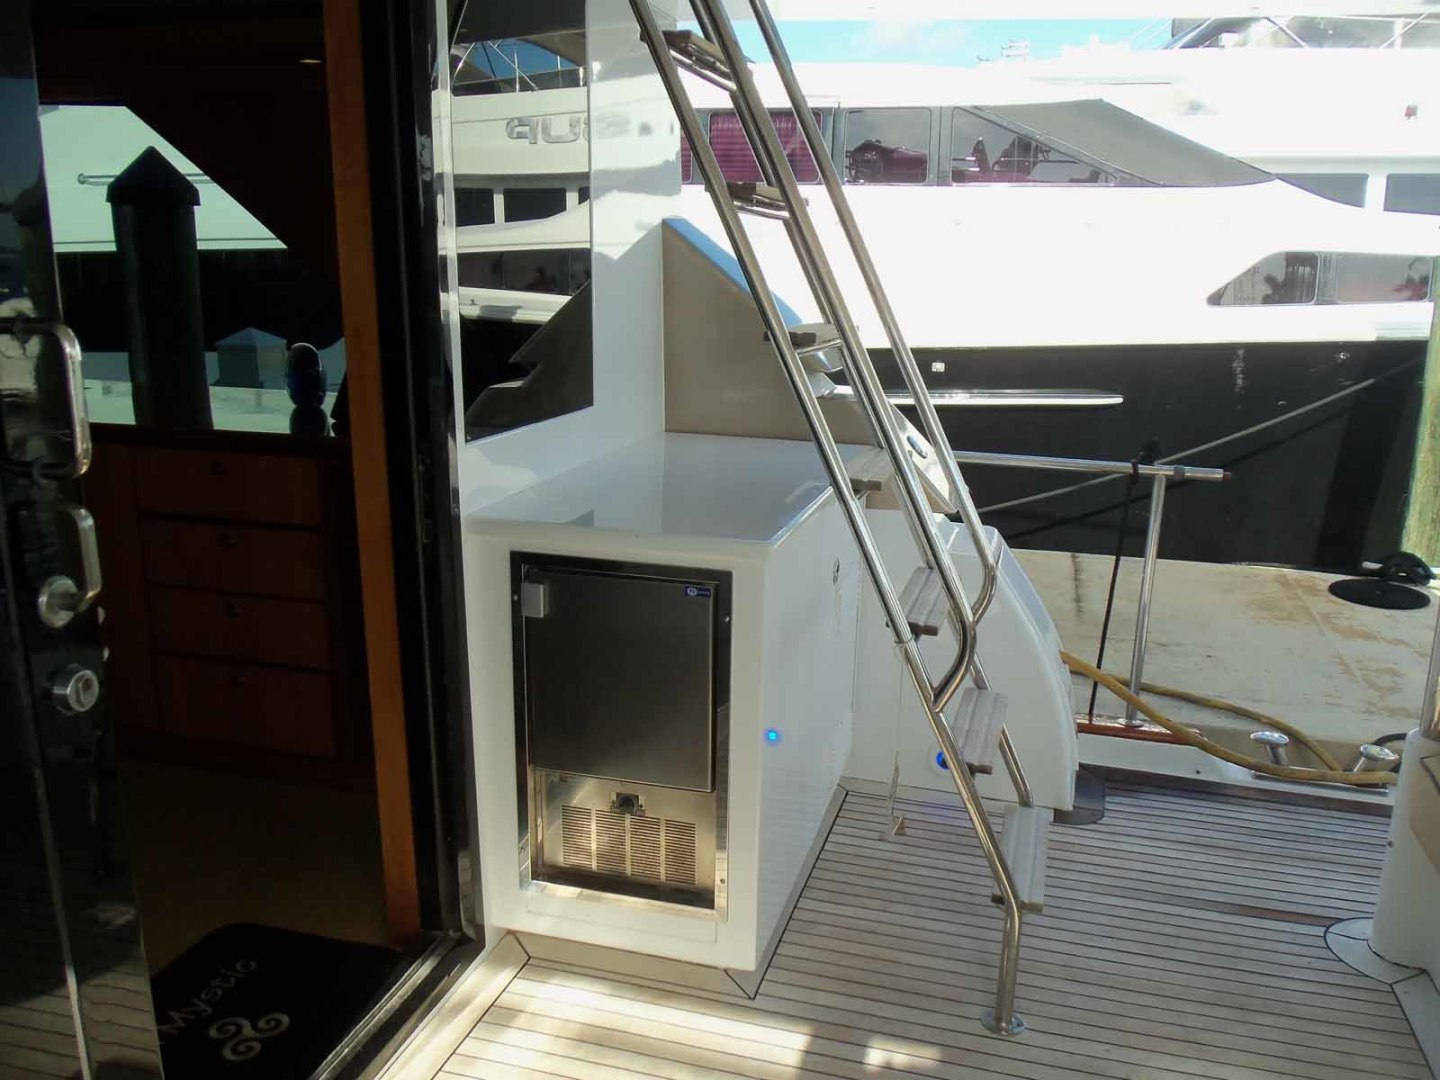 Queenship-Barretta 76 2004-SEA MYSTIC Fort Myers-Florida-United States-Stbd Side Aft Deck-1588130 | Thumbnail